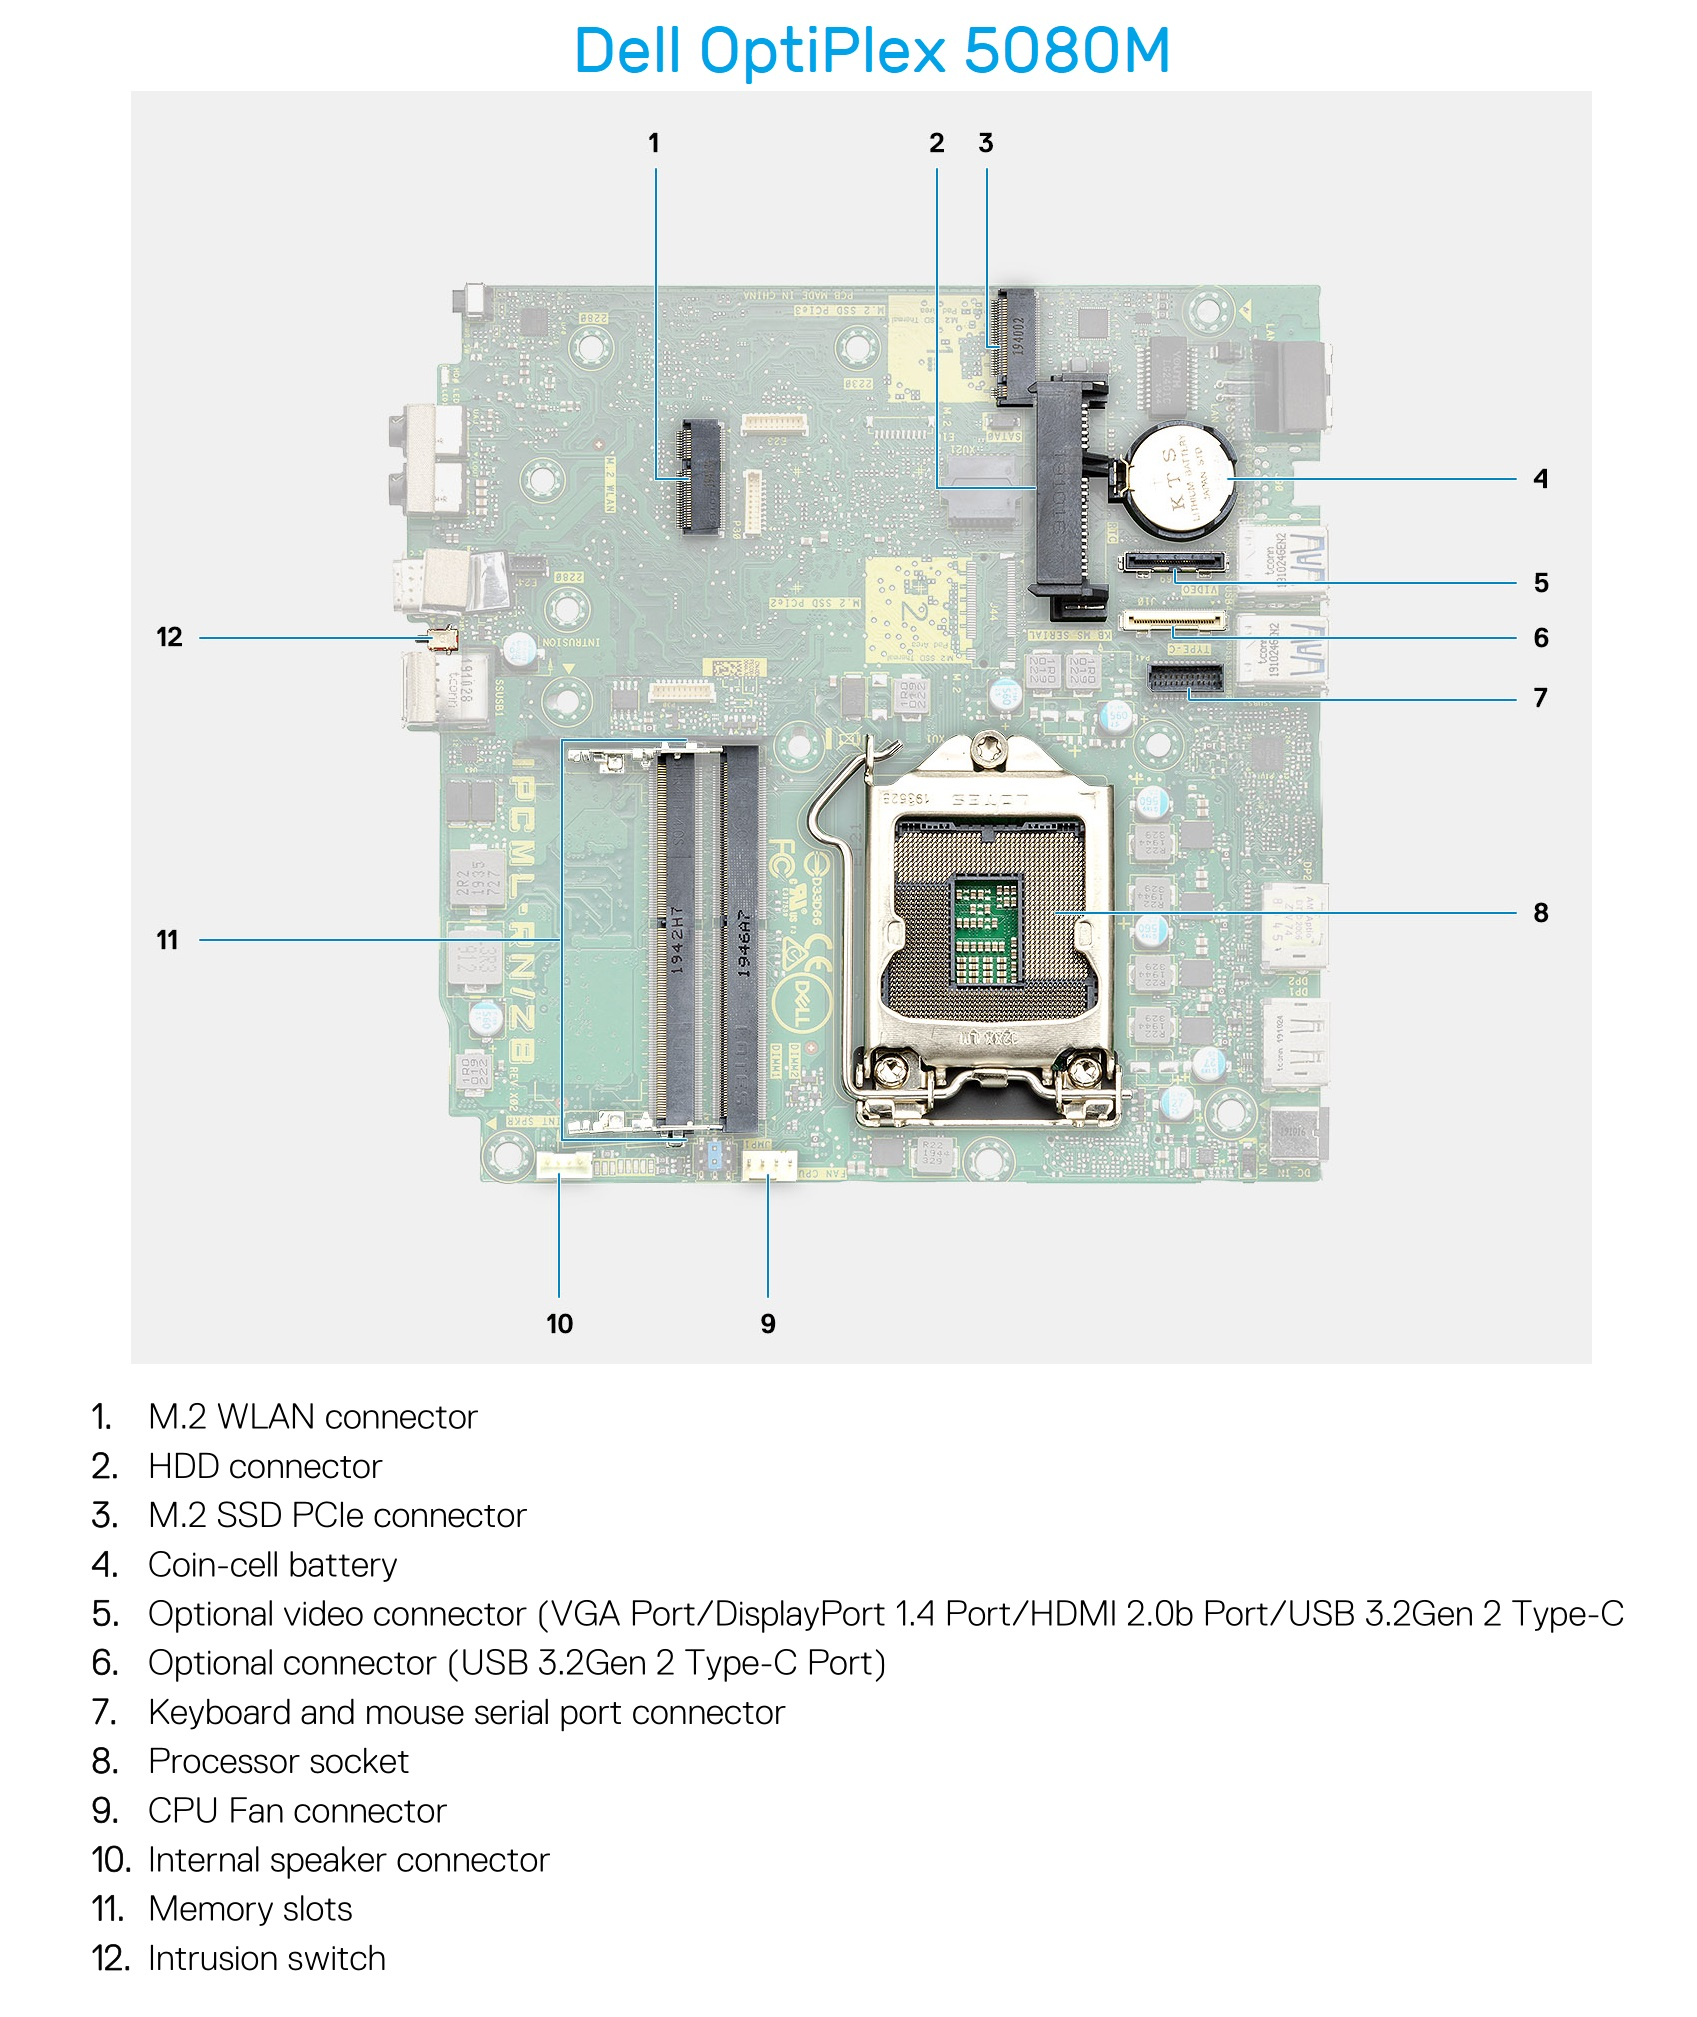 Dell_OptiPlex_5080M_motherboard.jpg motherboard layout